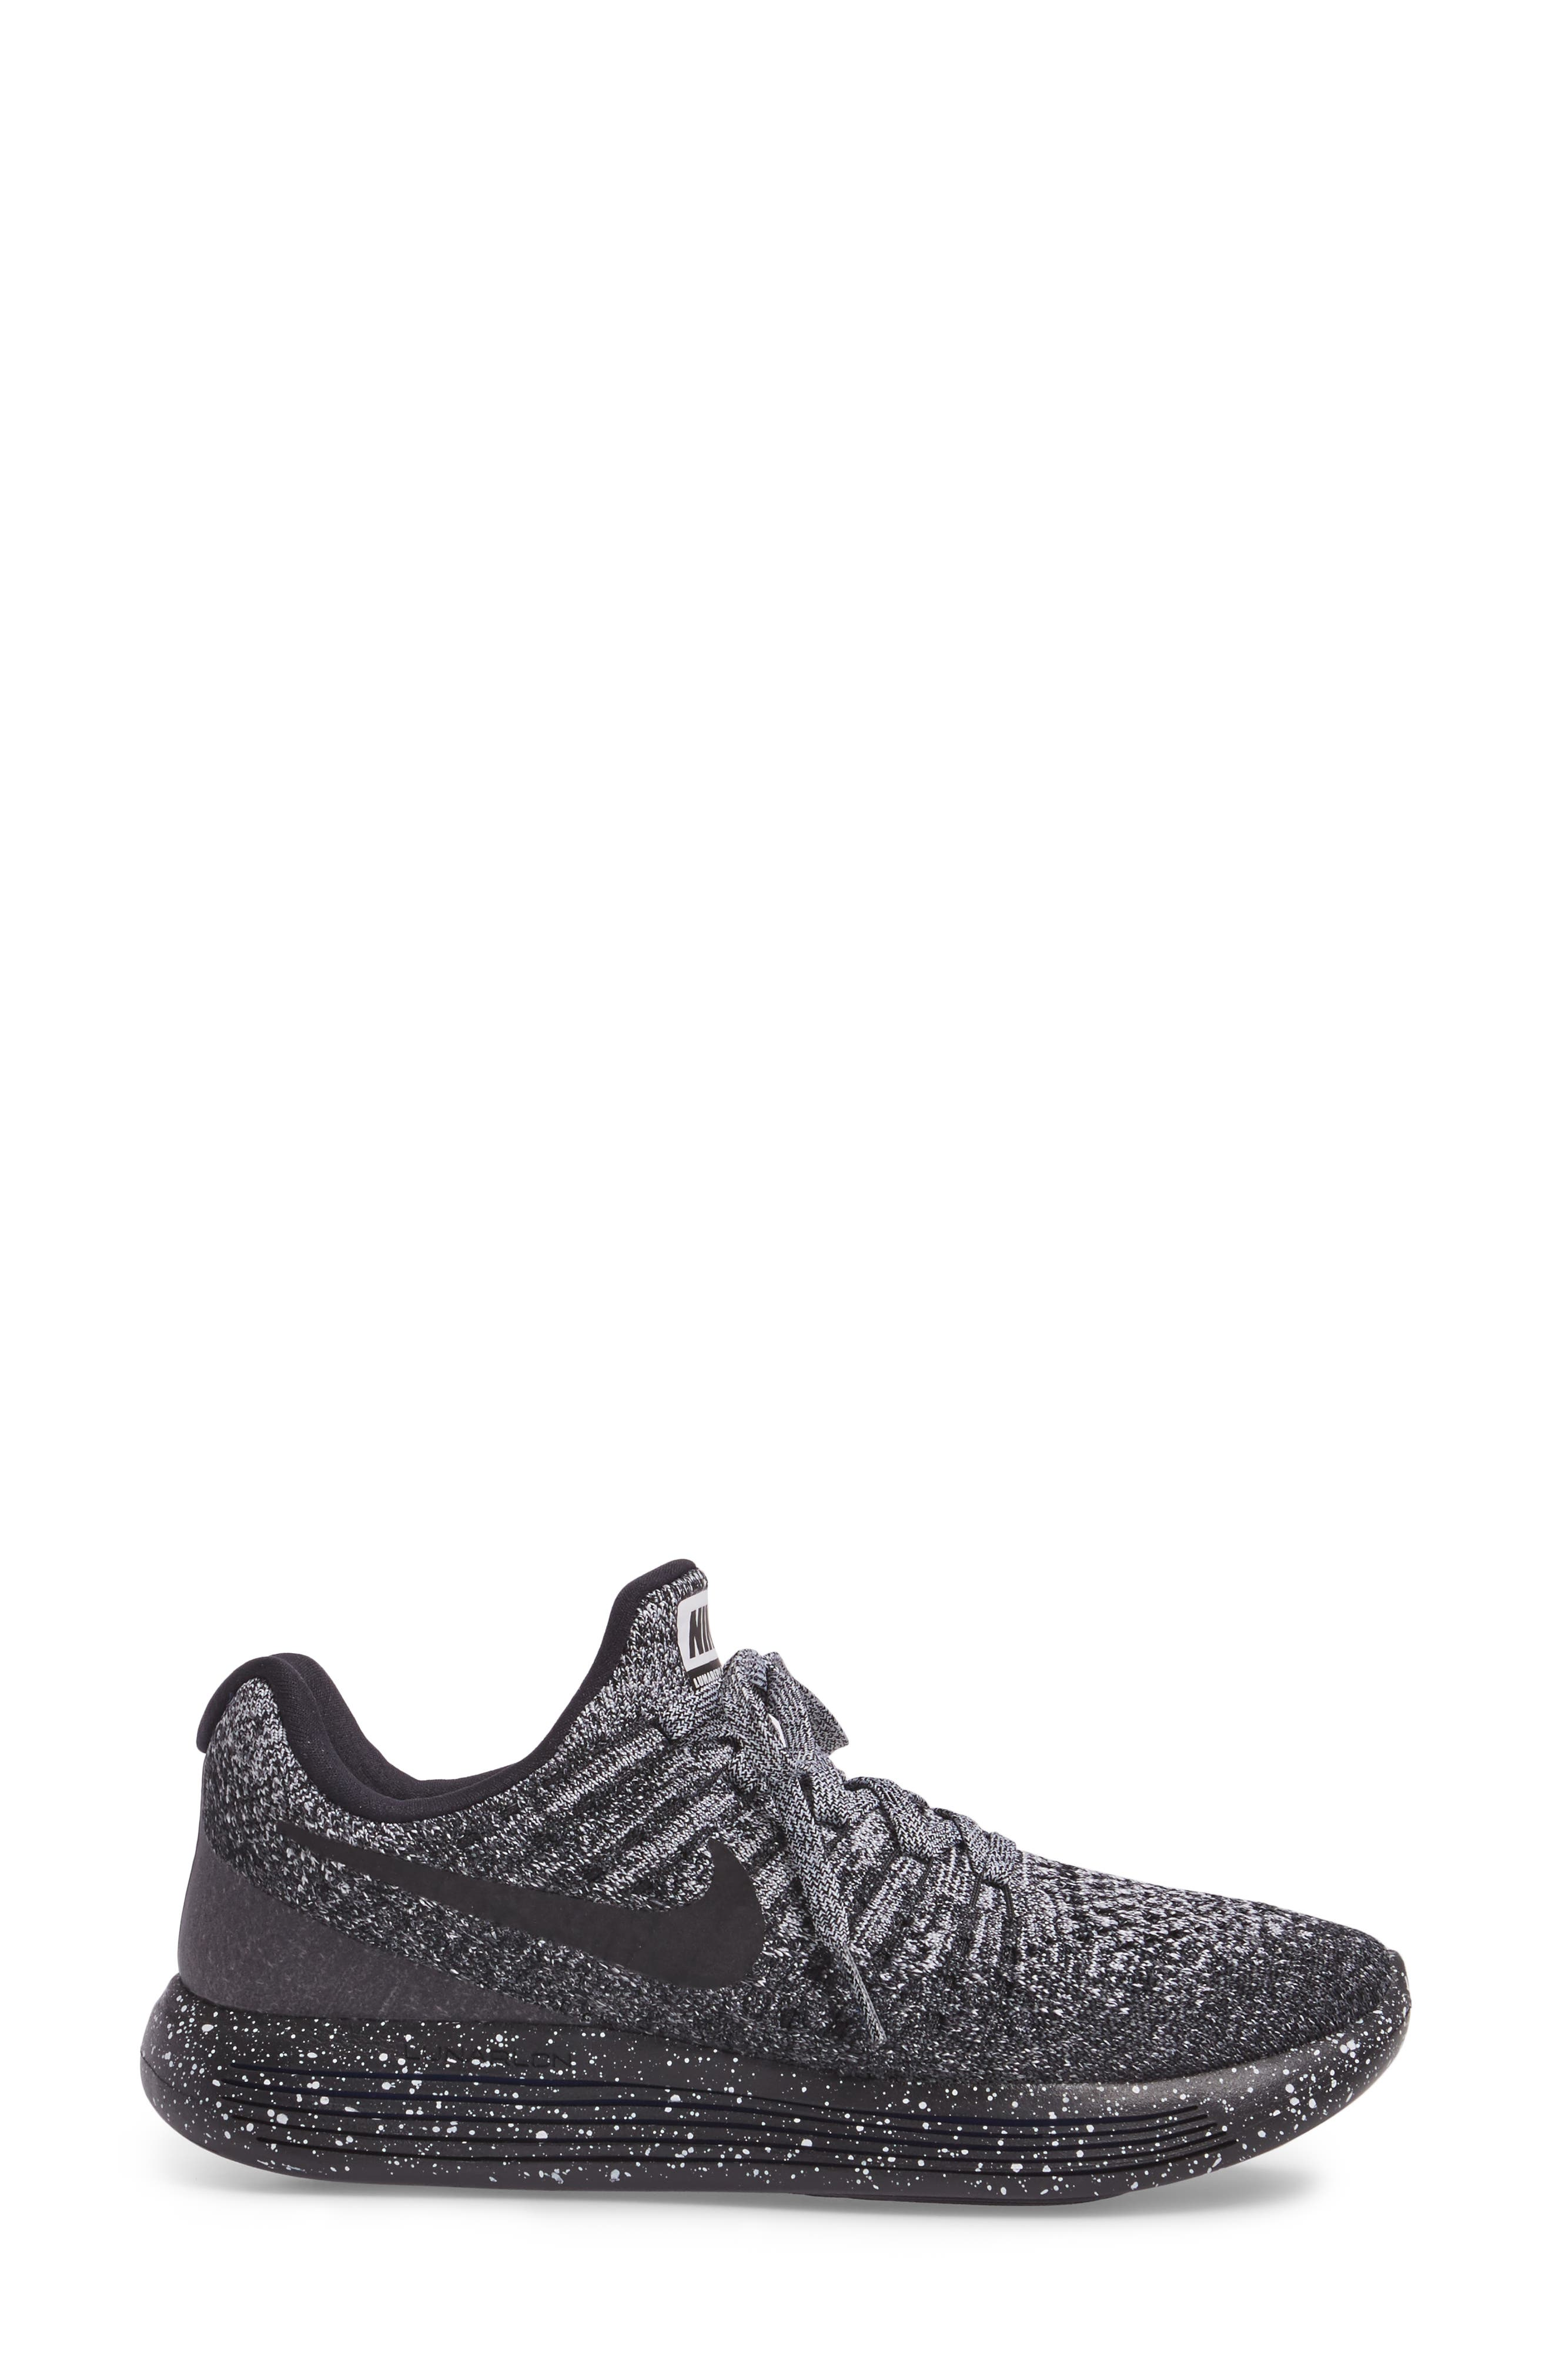 ,                             LunarEpic Low Flyknit 2 Running Shoe,                             Alternate thumbnail 43, color,                             026